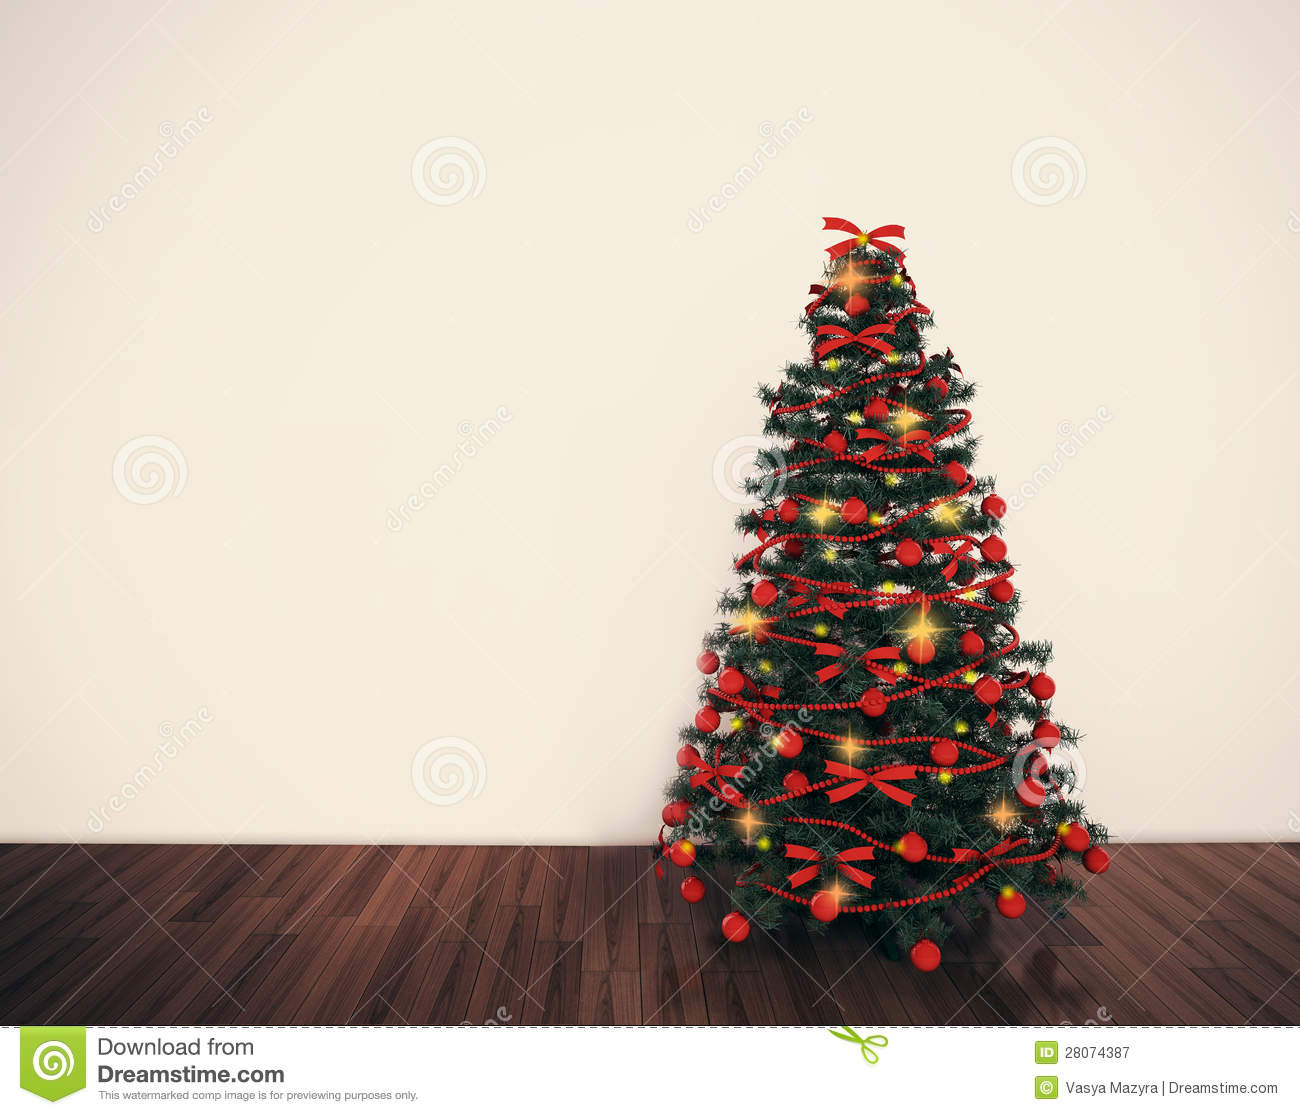 Christmas tree in empty living room royalty free stock photography image 28074387 for Christmas tree in living room photos